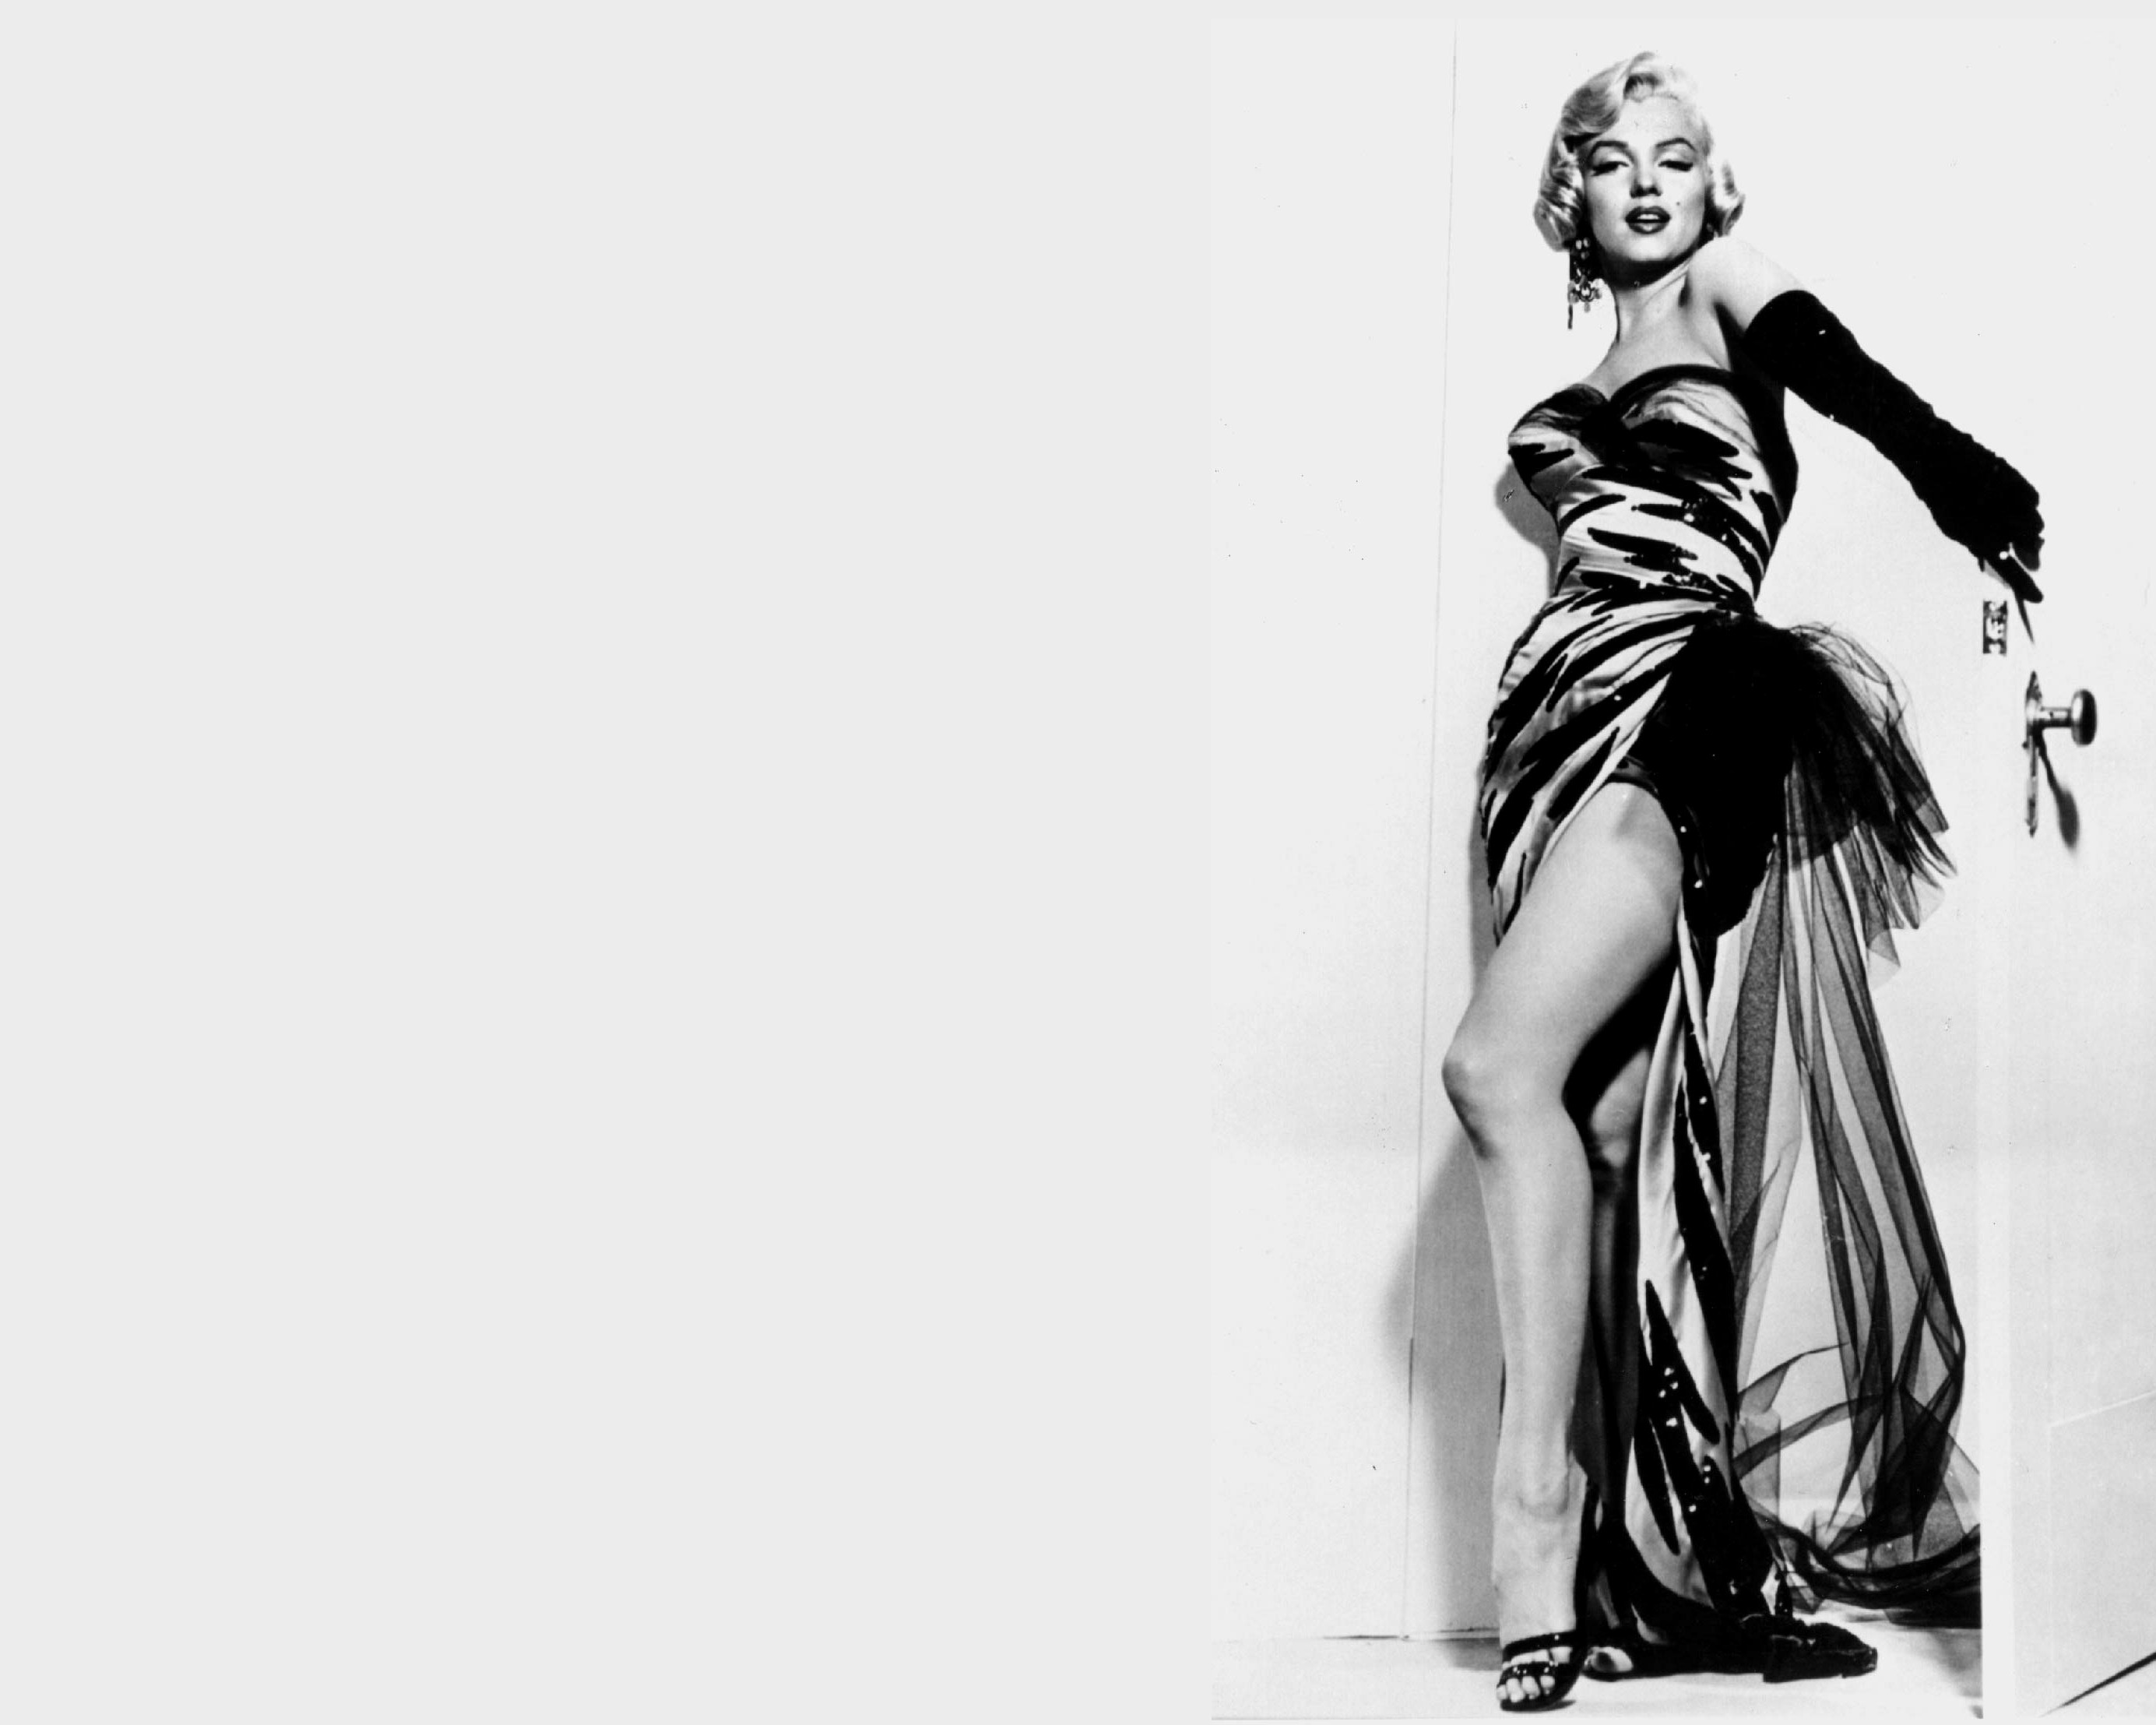 122 marilyn monroe hd wallpapers background images wallpaper abyss voltagebd Choice Image